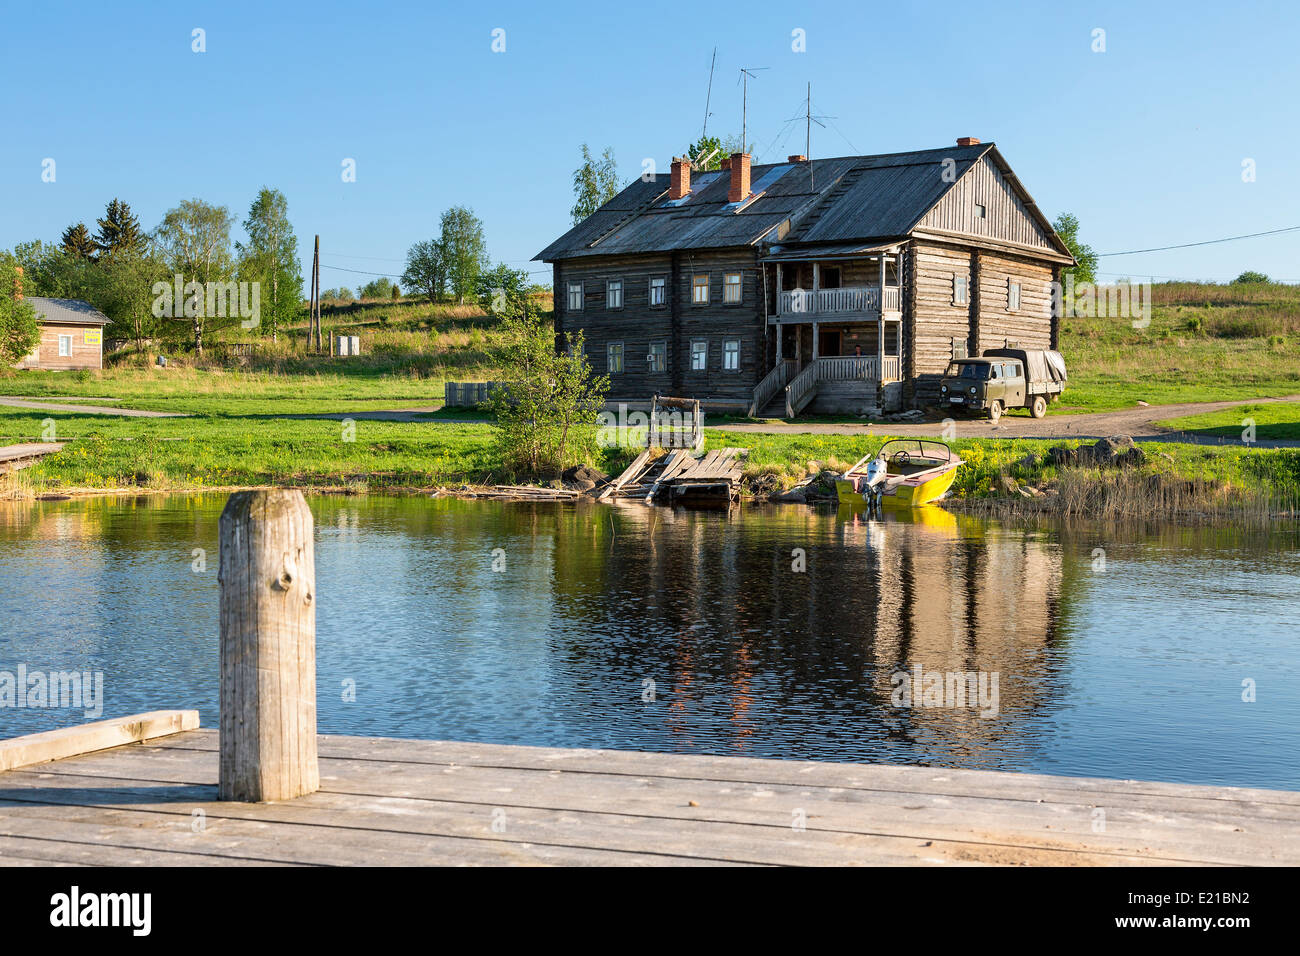 Russia, Village at Kizhi Island - Stock Image